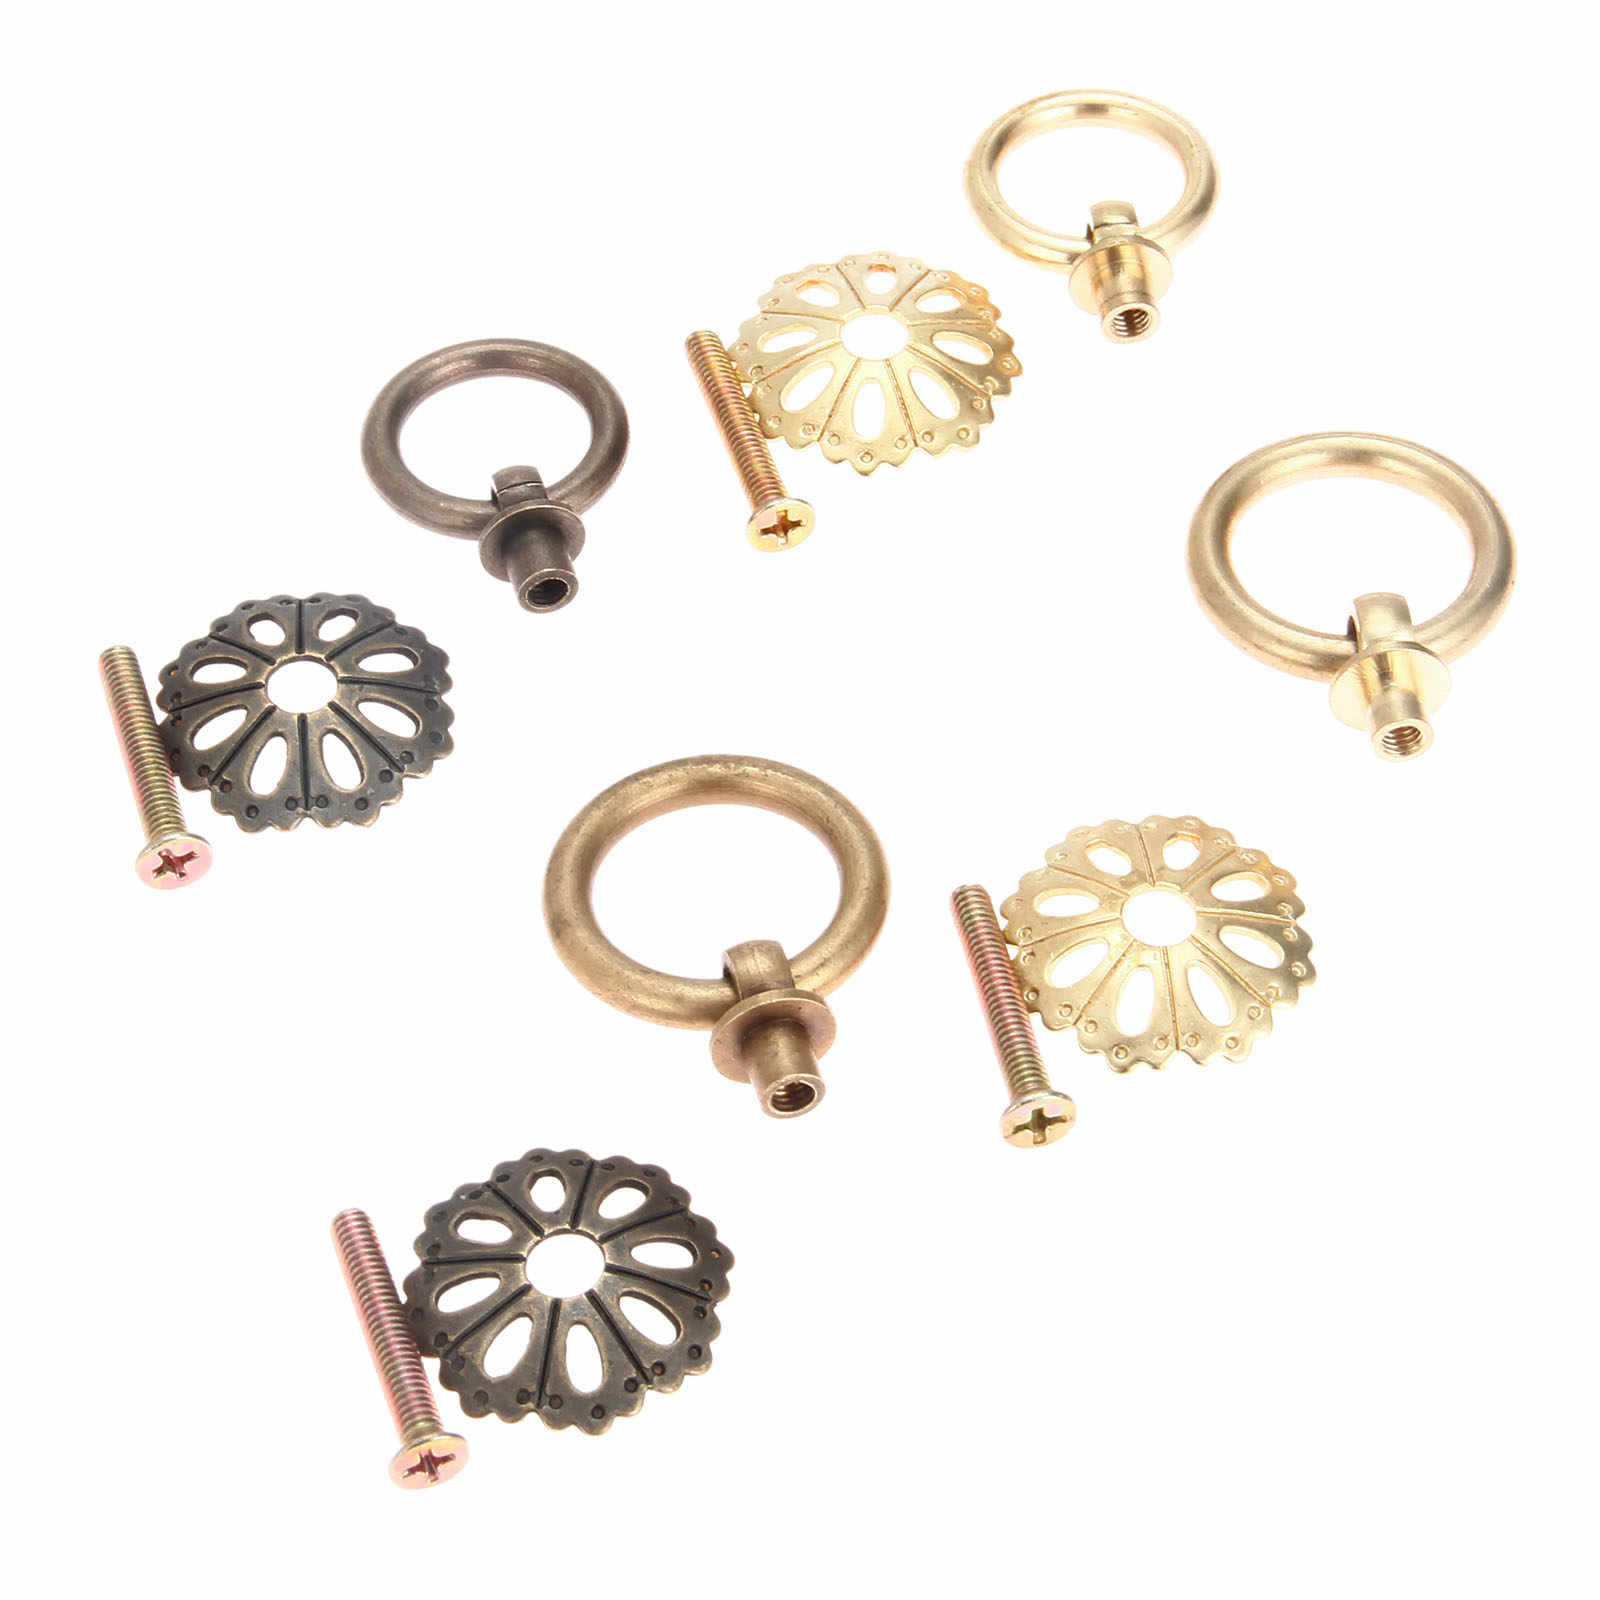 Dreld Brass Cabinet Door Furniture Handle Chinese Drop Cupboard Ring Drawer Pull Handle Knob For Wood Box Hardware 25mm 30mm Cabinet Pulls Aliexpress